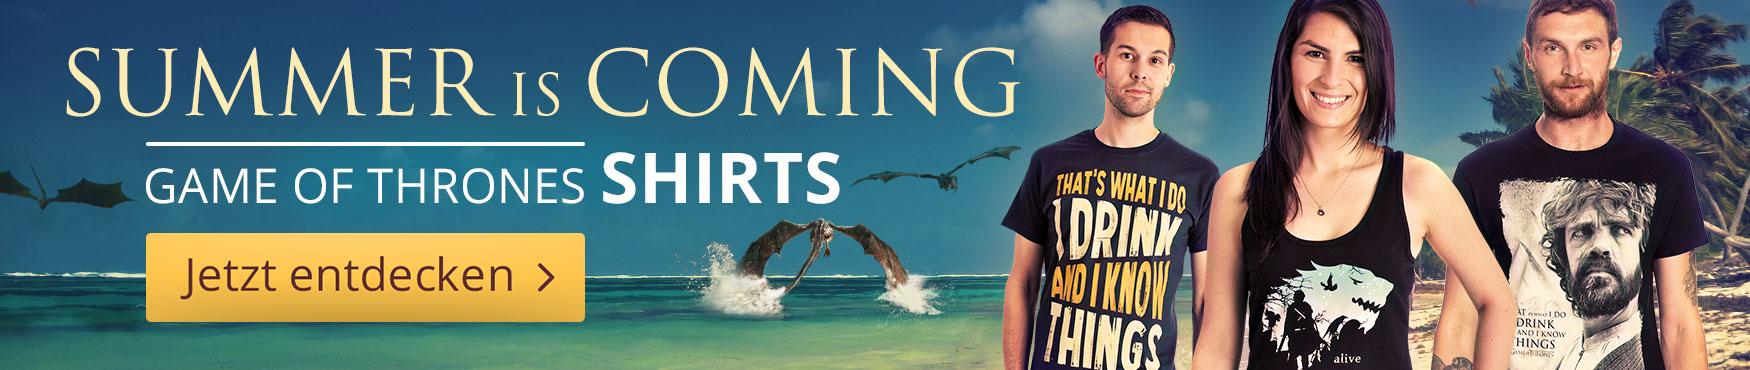 Summer is Coming: Game of Thrones - T-Shirts